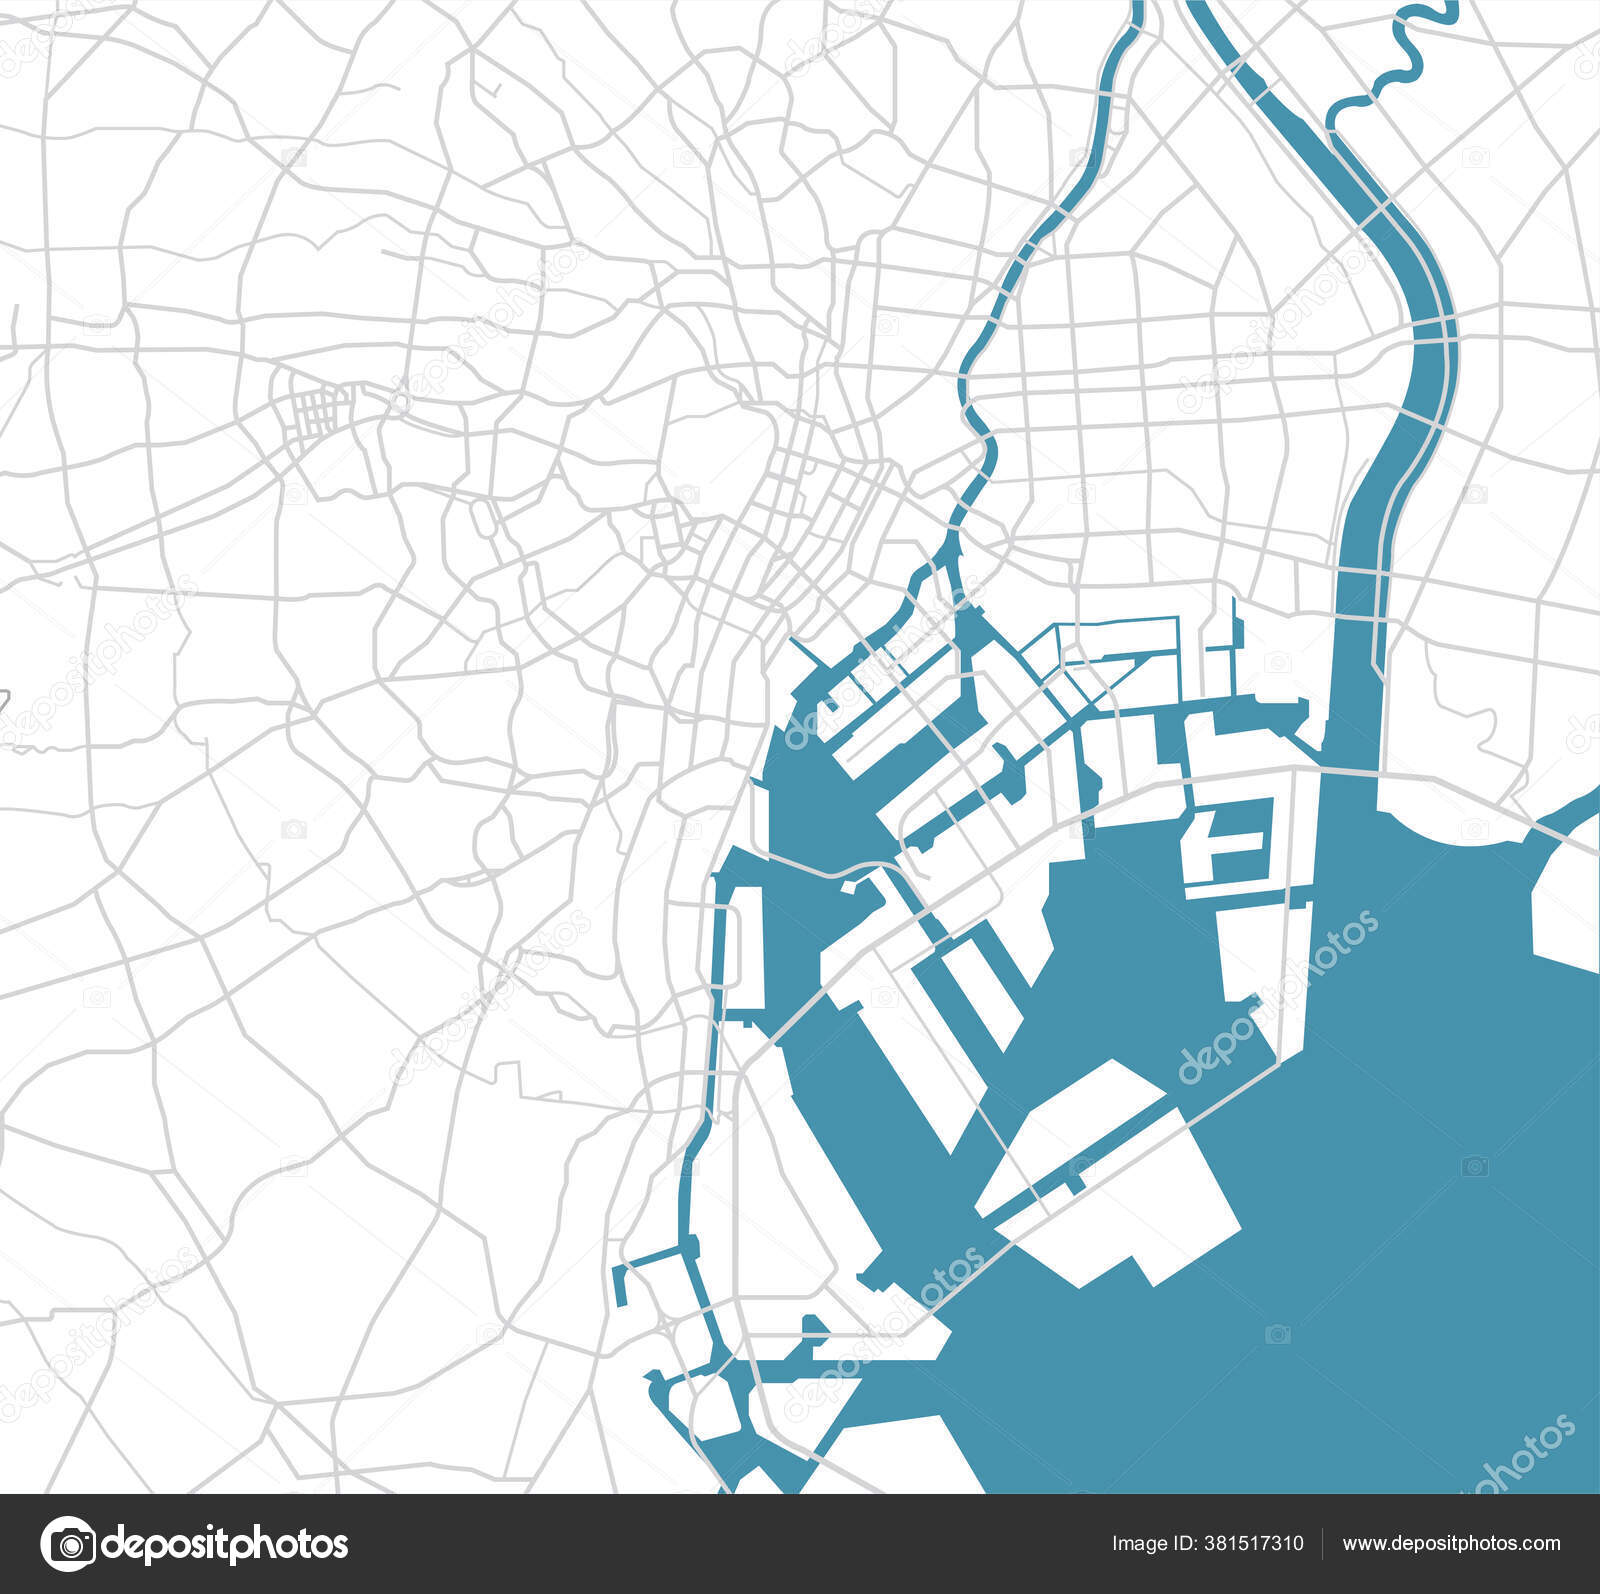 Áˆ Bay Area Map Stock Vectors Royalty Free Bay Area Map Illustrations Download On Depositphotos Would love to have this map in a kid's room. https depositphotos com 381517310 stock illustration tokyo bay area road map html